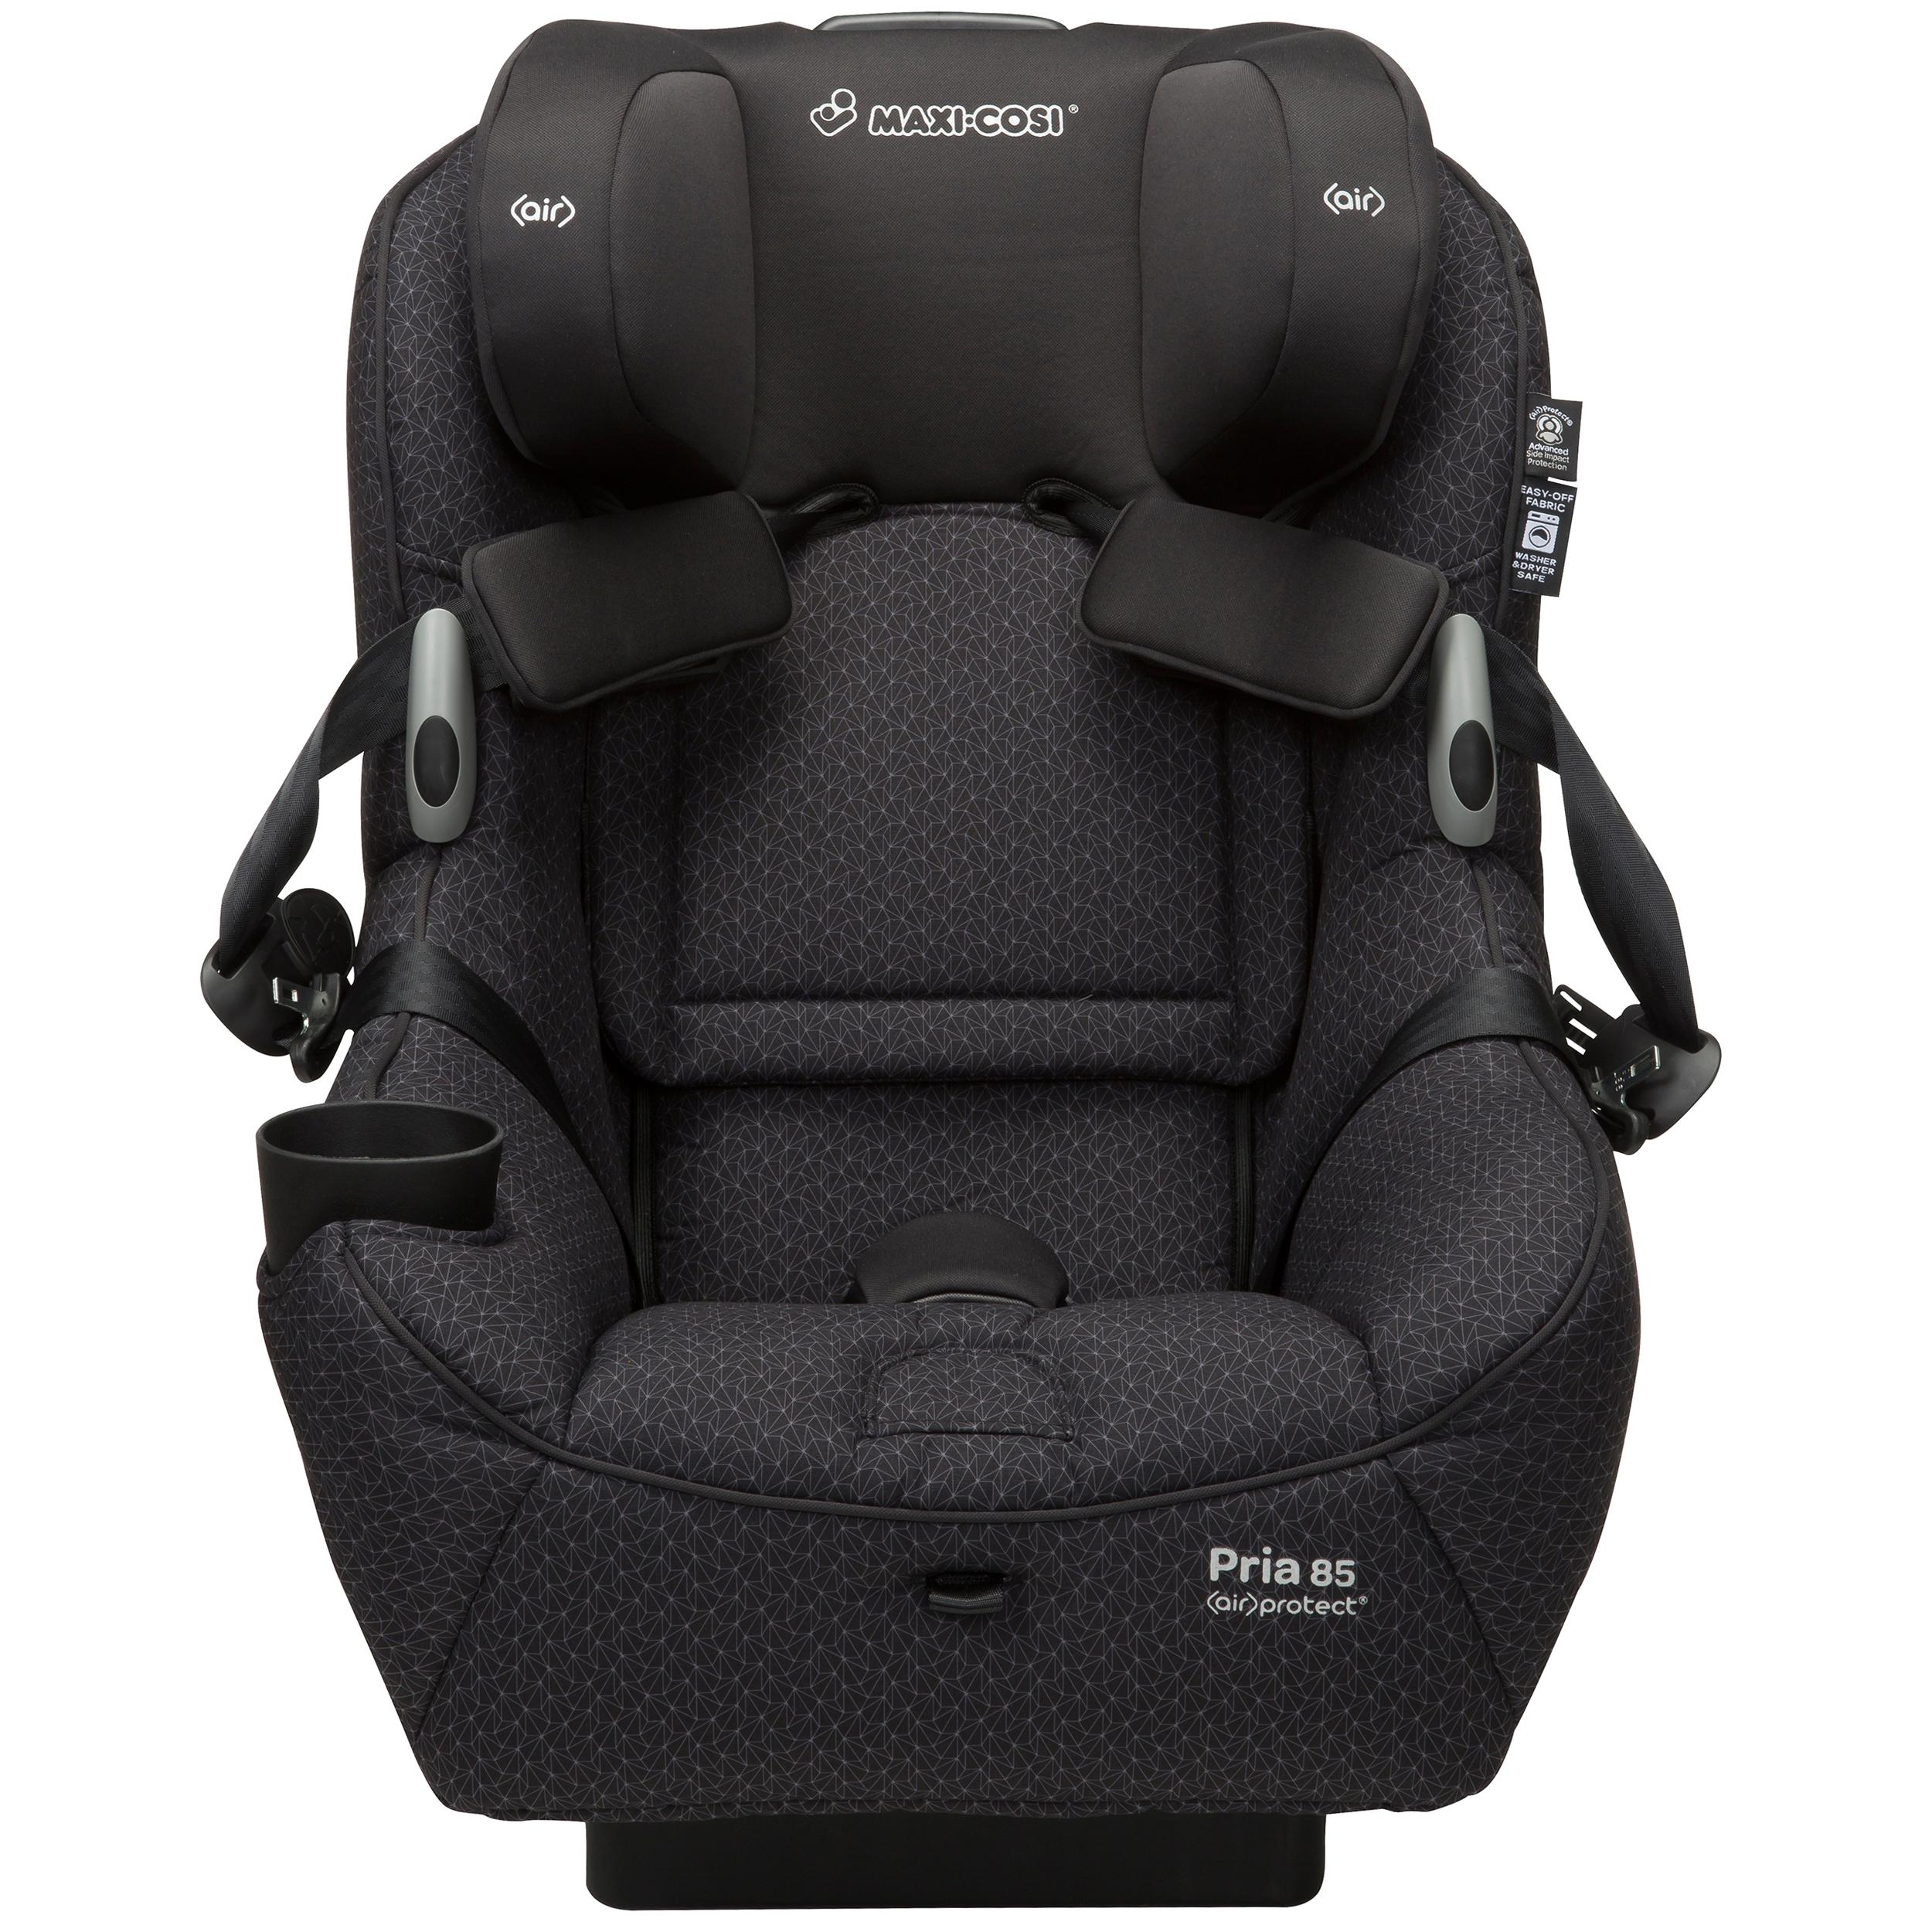 maxi cosi pria 85 convertible car seat. Black Bedroom Furniture Sets. Home Design Ideas